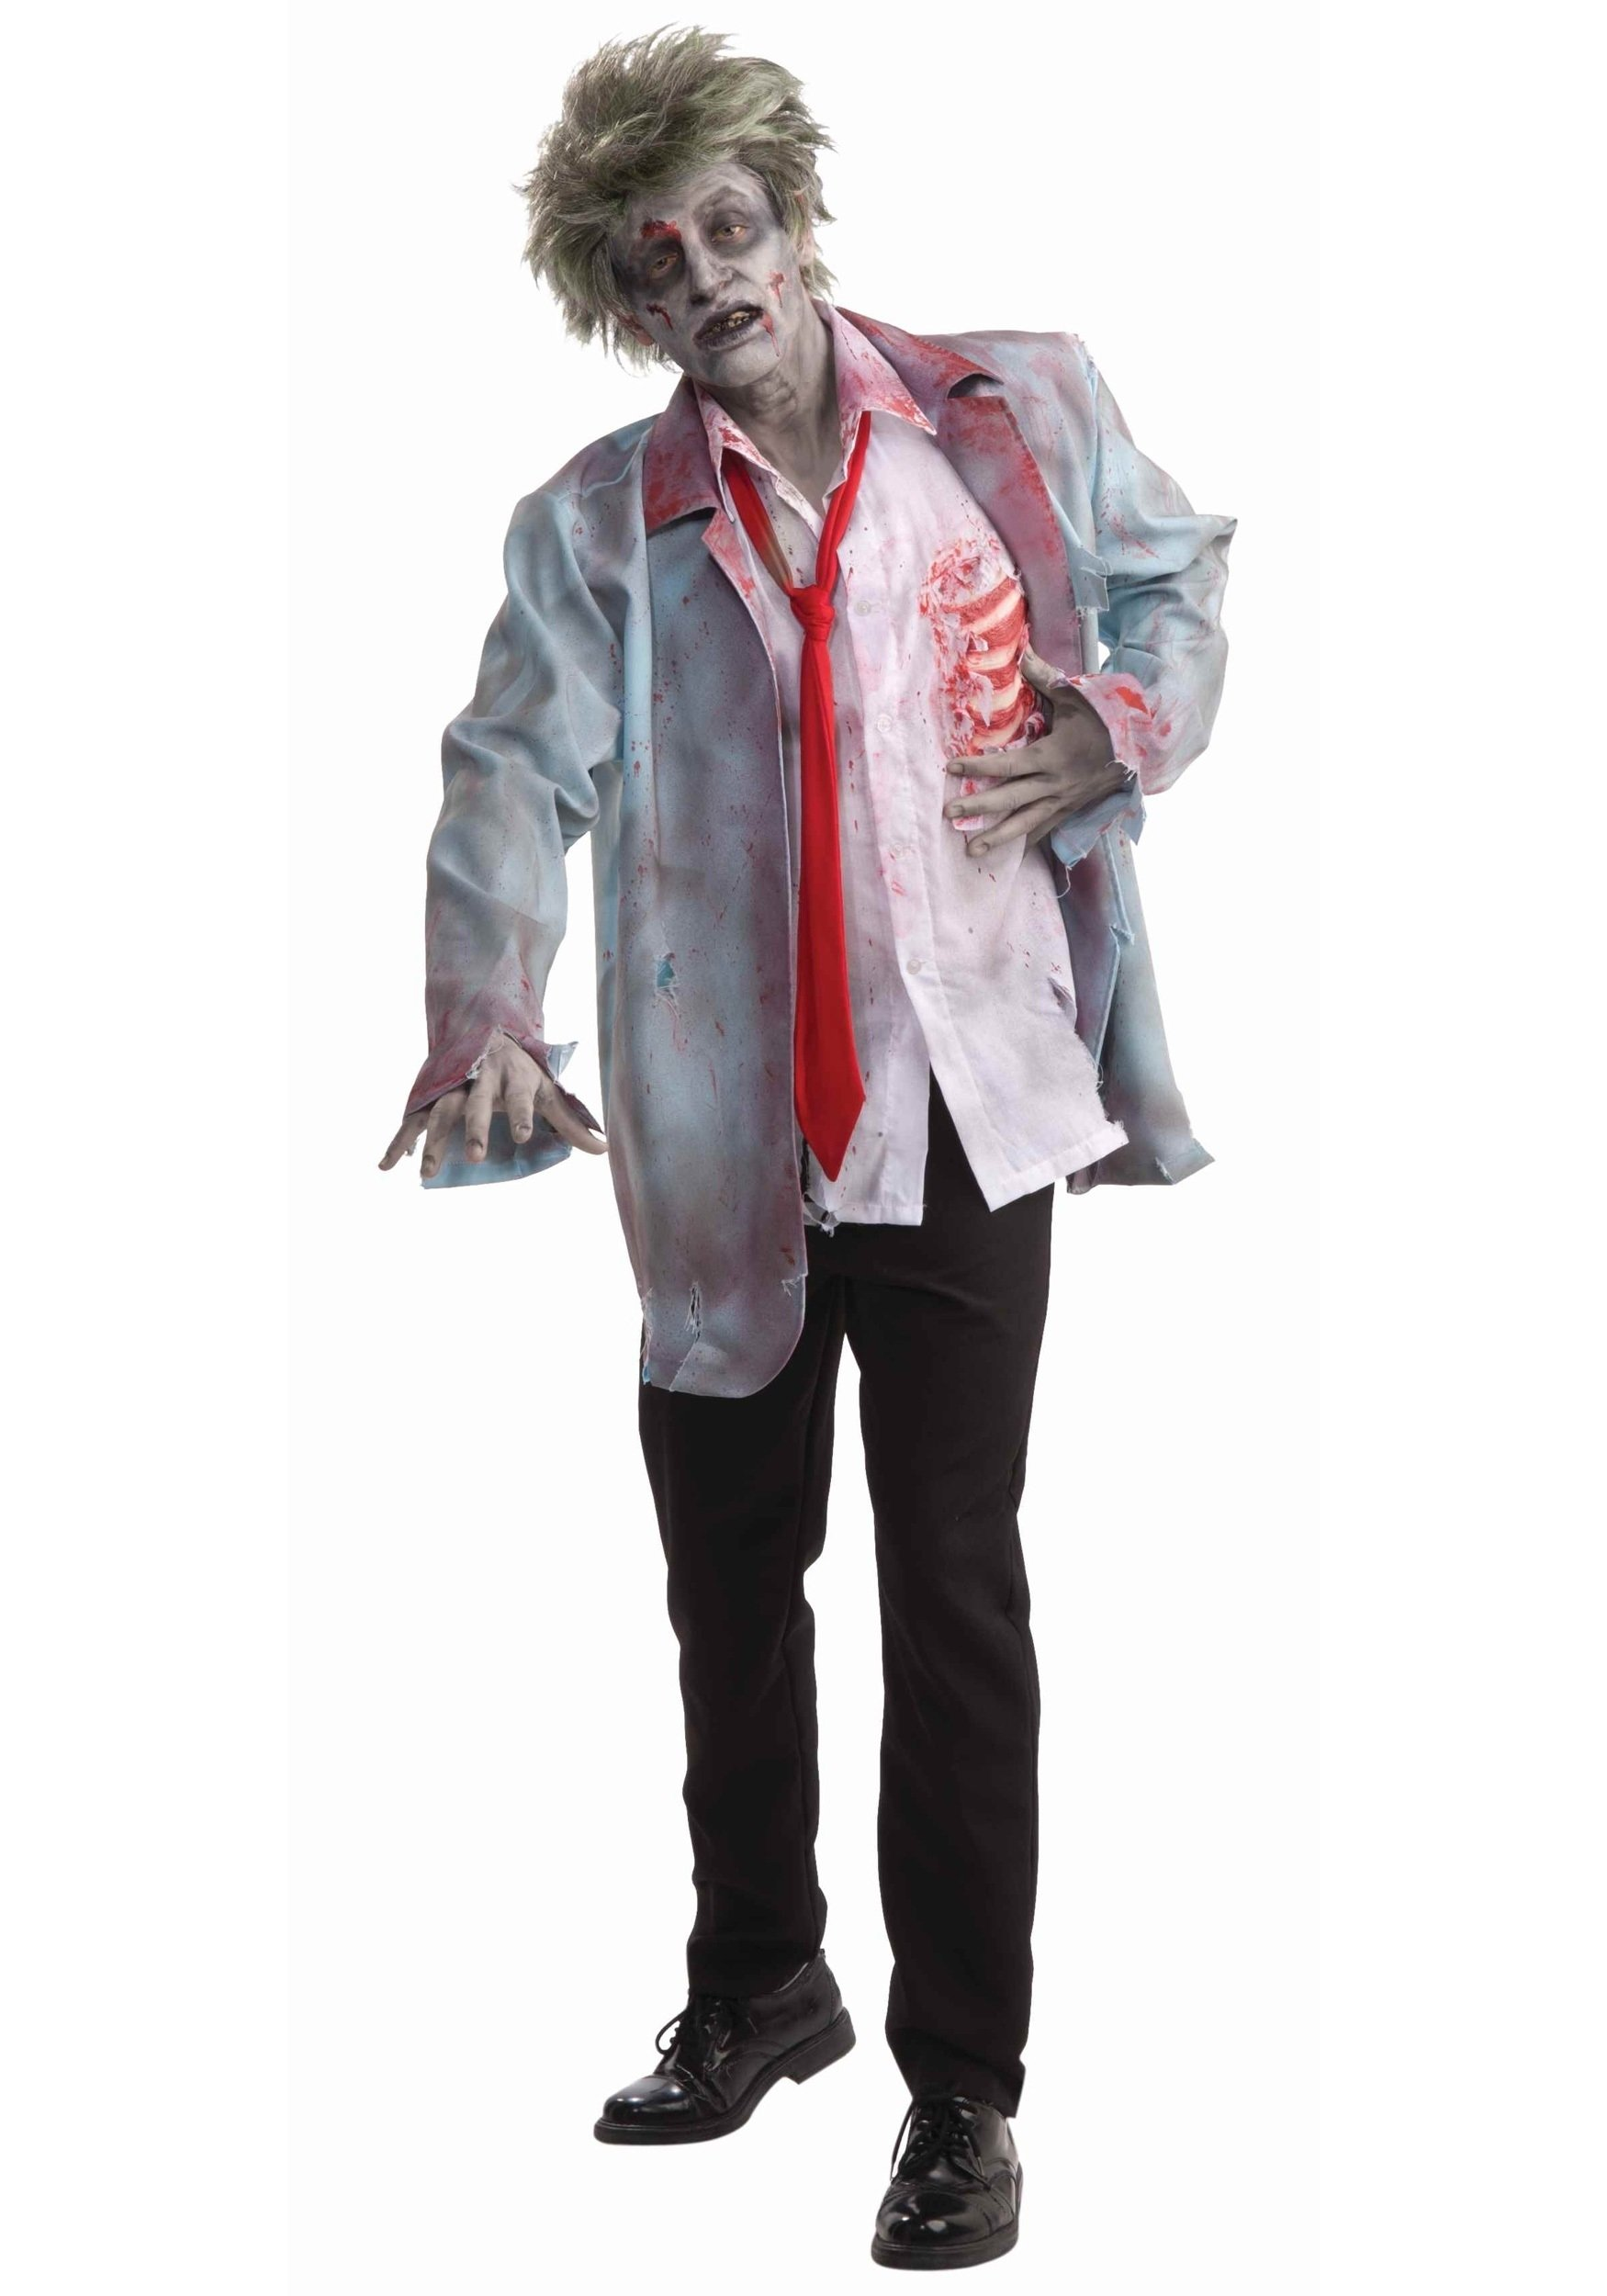 10 Fashionable Zombie Costume Ideas For Men creepy zombie husband costume adult zombie costume ideas 1 2020